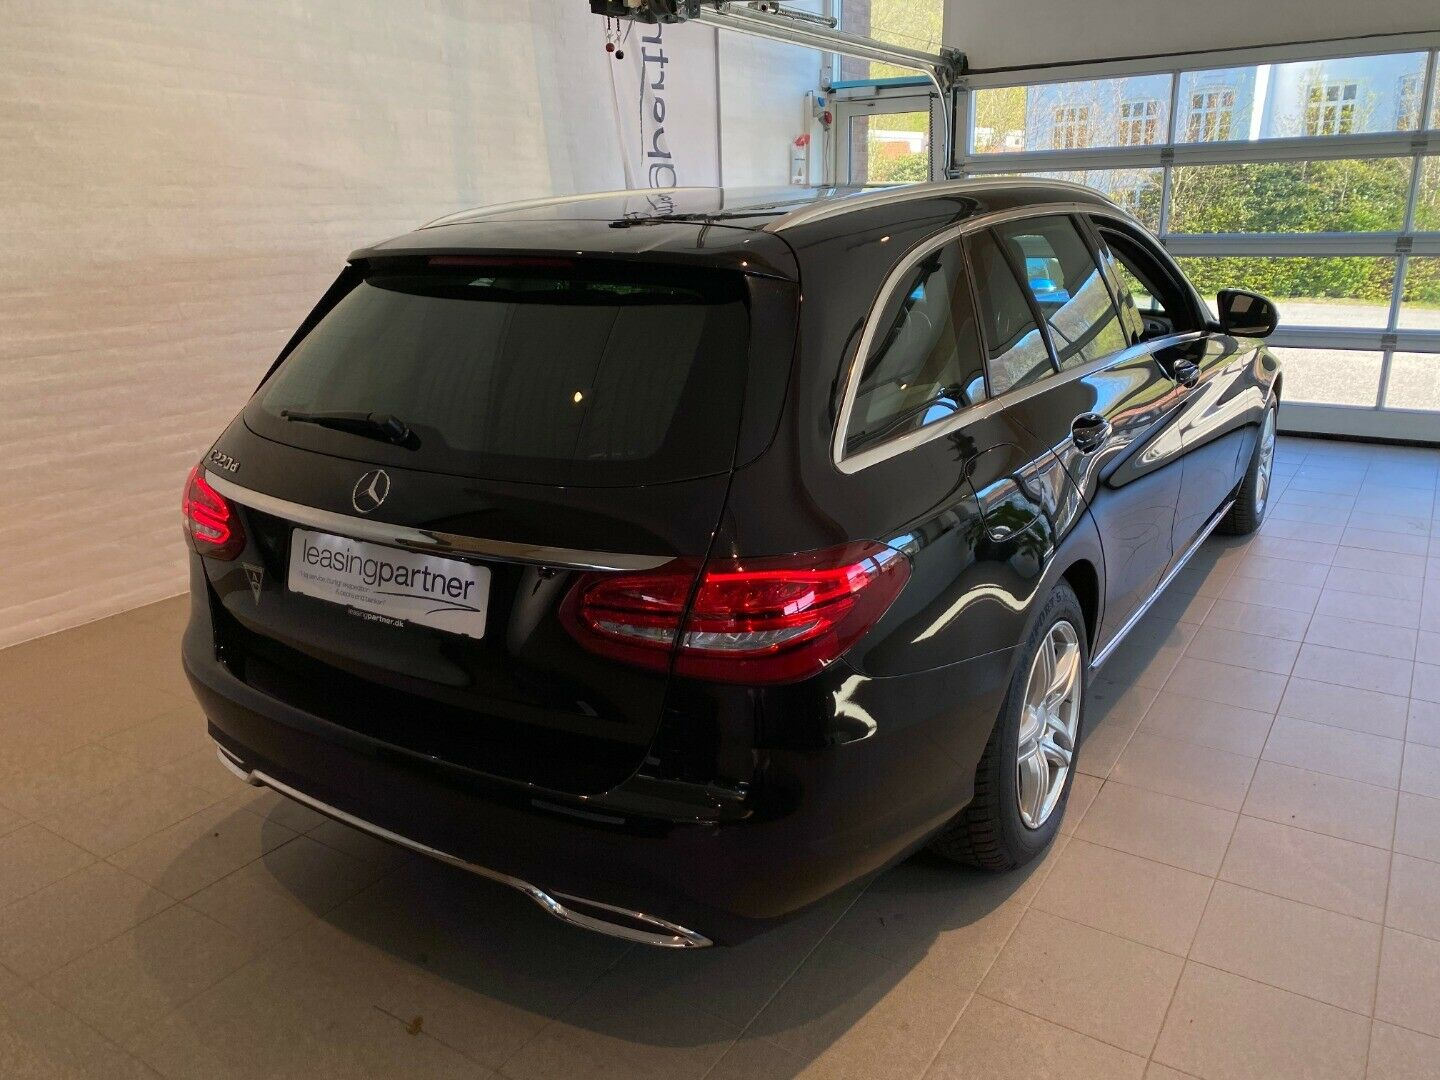 Mercedes C220 d 2,2 Avantgarde stc. 5d, Sort